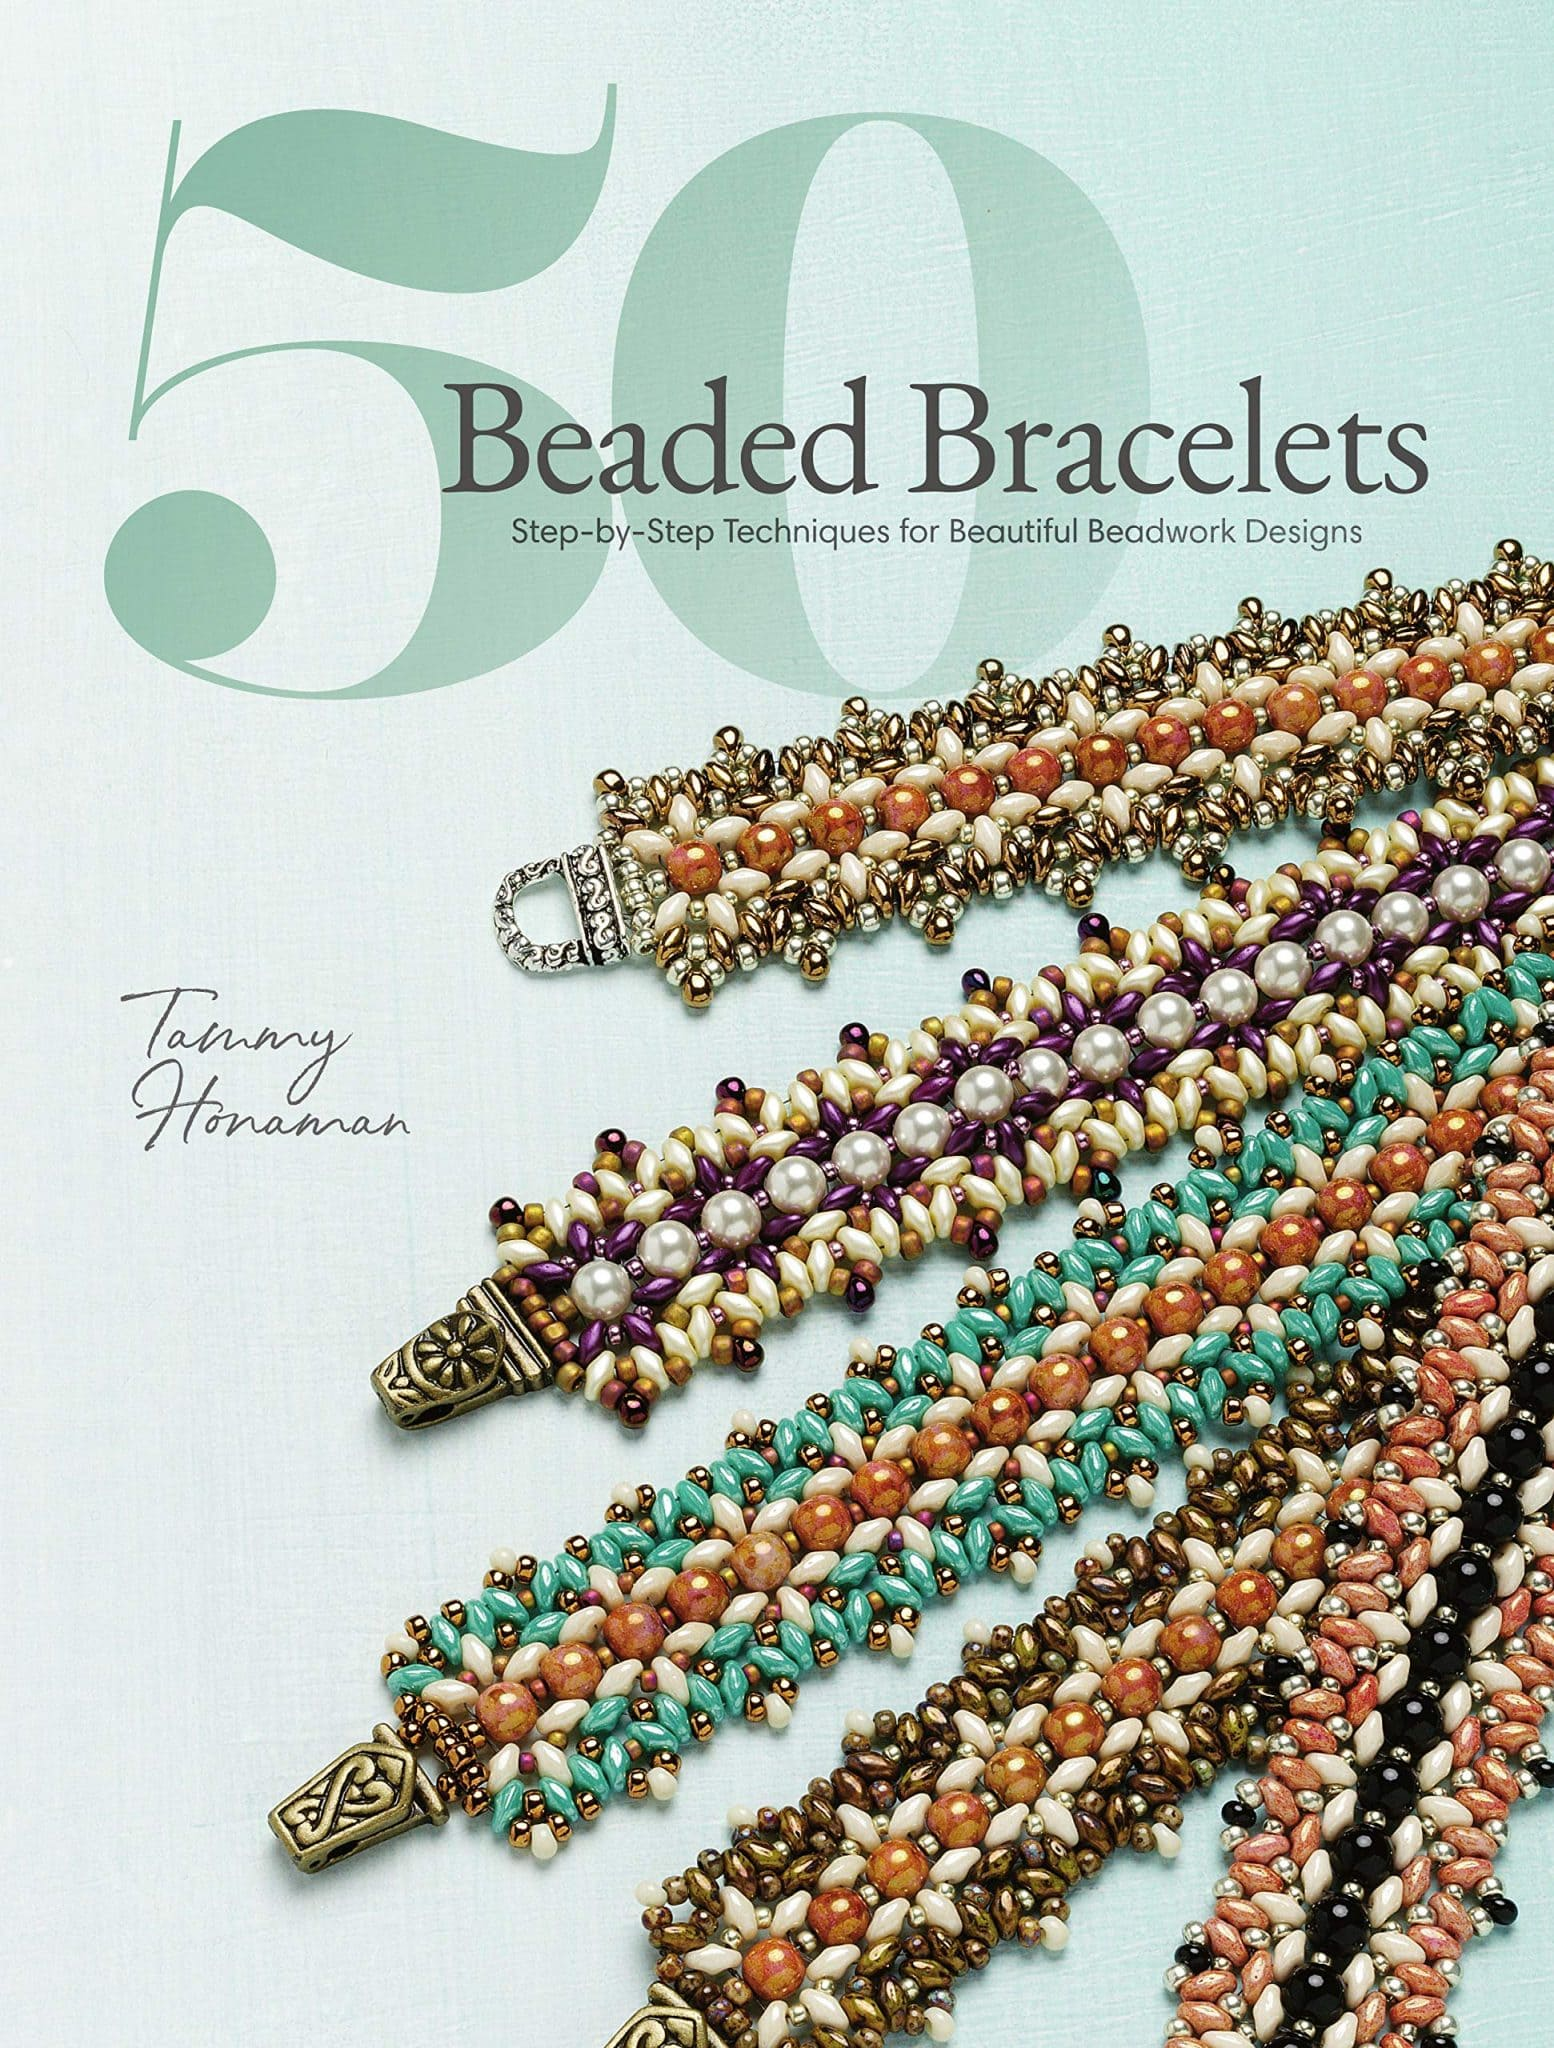 50 BEADED BRACELETS: Step-by-Step Techniques for Beautiful Beadwork Designs by Tammy Honaman